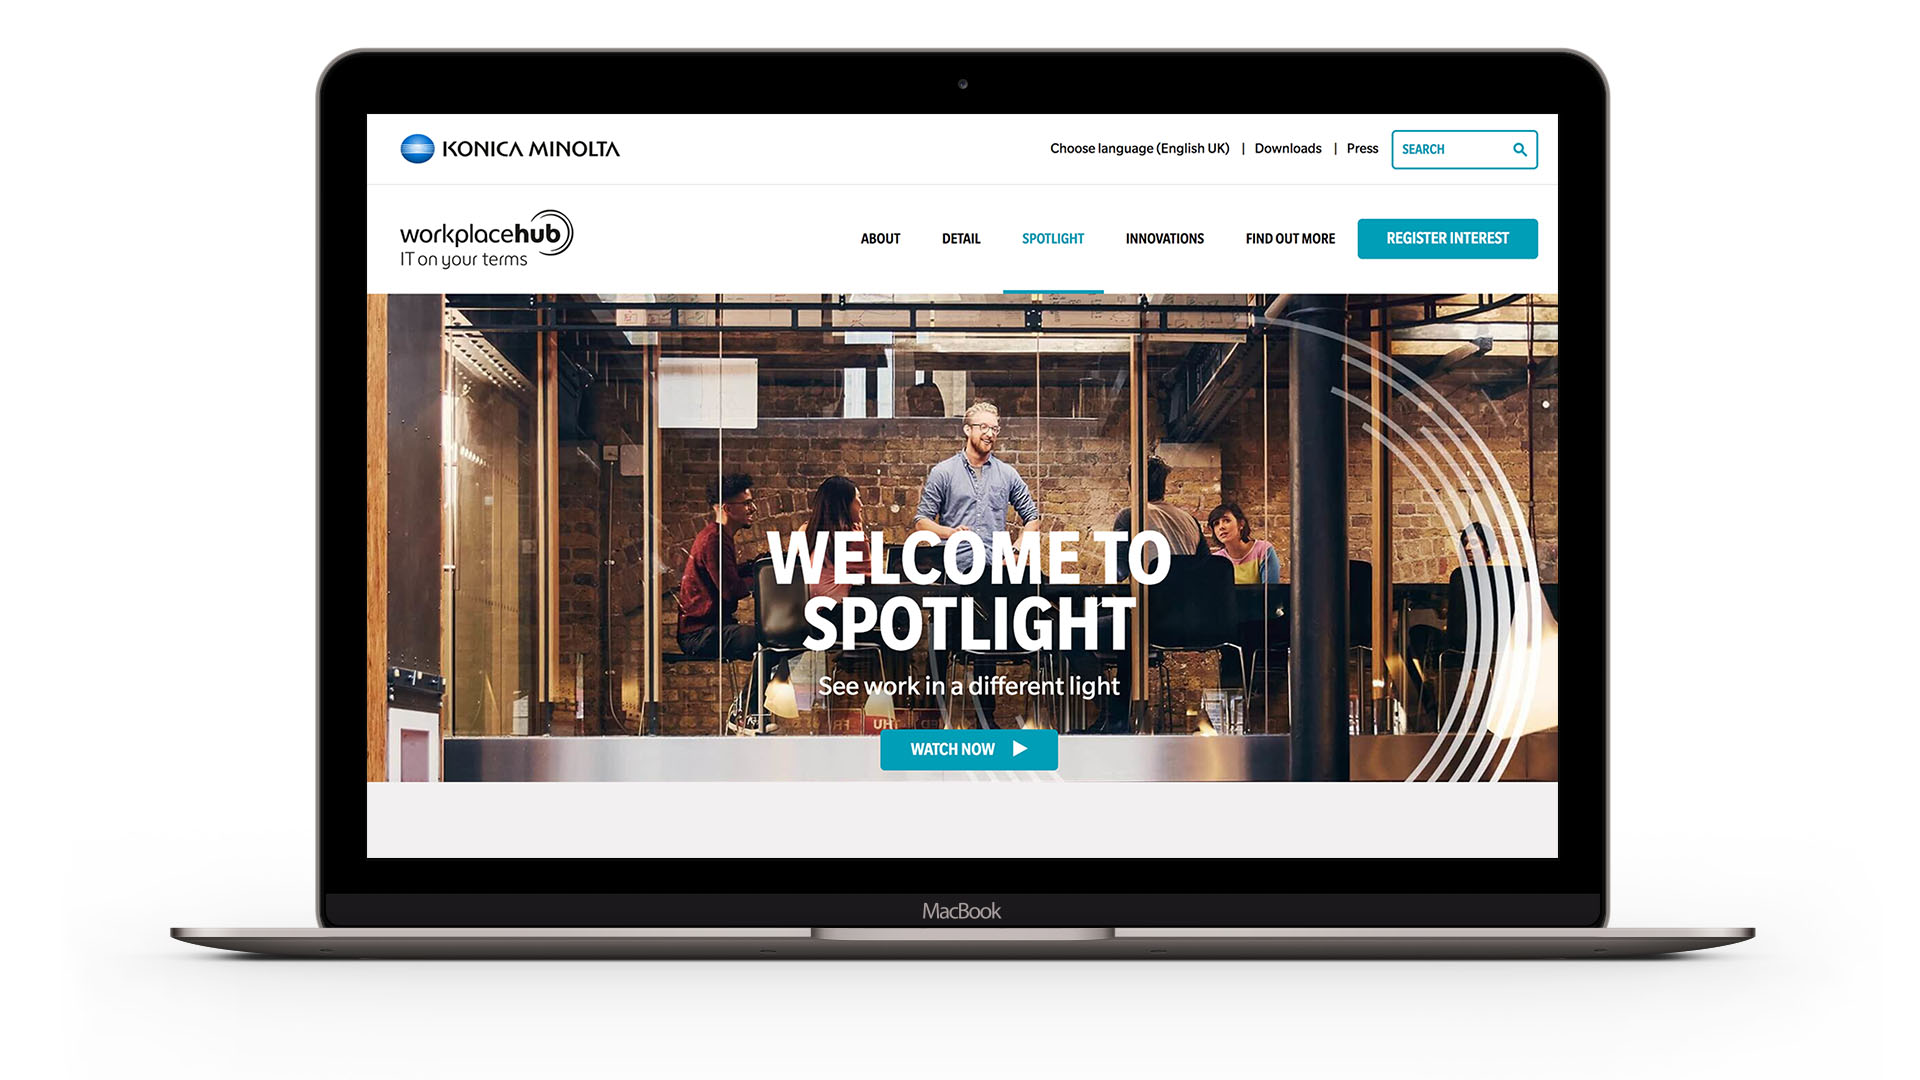 22 Group Manchester did a web design for Konica Minolta